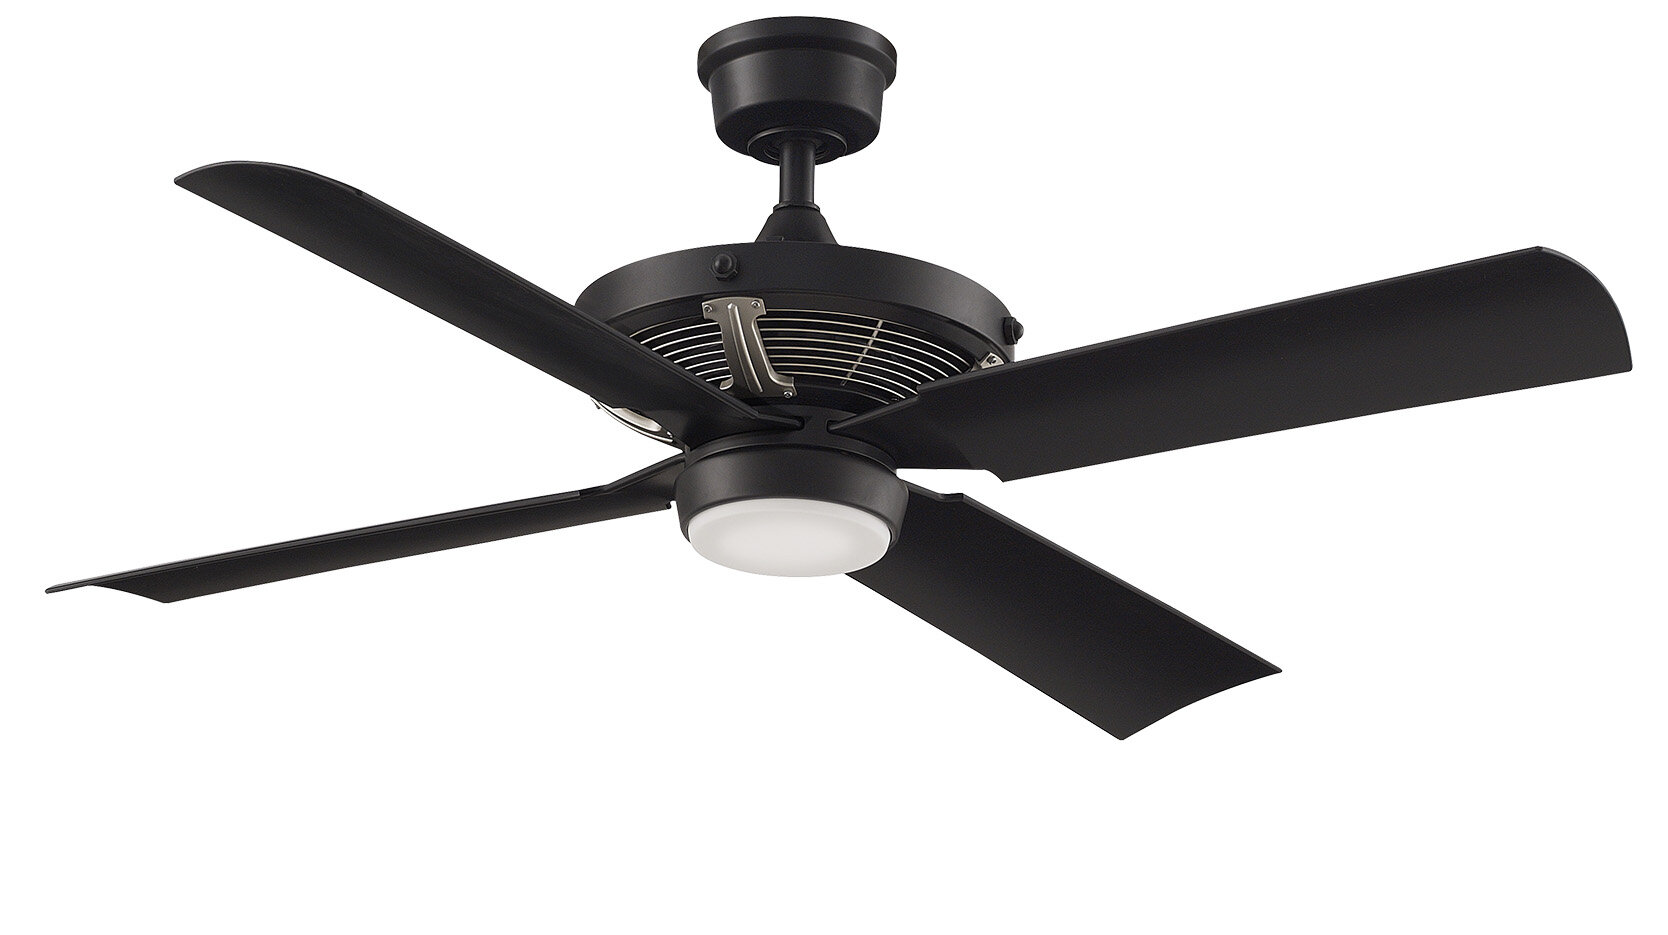 dp with control single hammered kit inch aged collection knightsbridge e fan dark five litex bronze indoor blades ceiling abs remote light outdoor black and